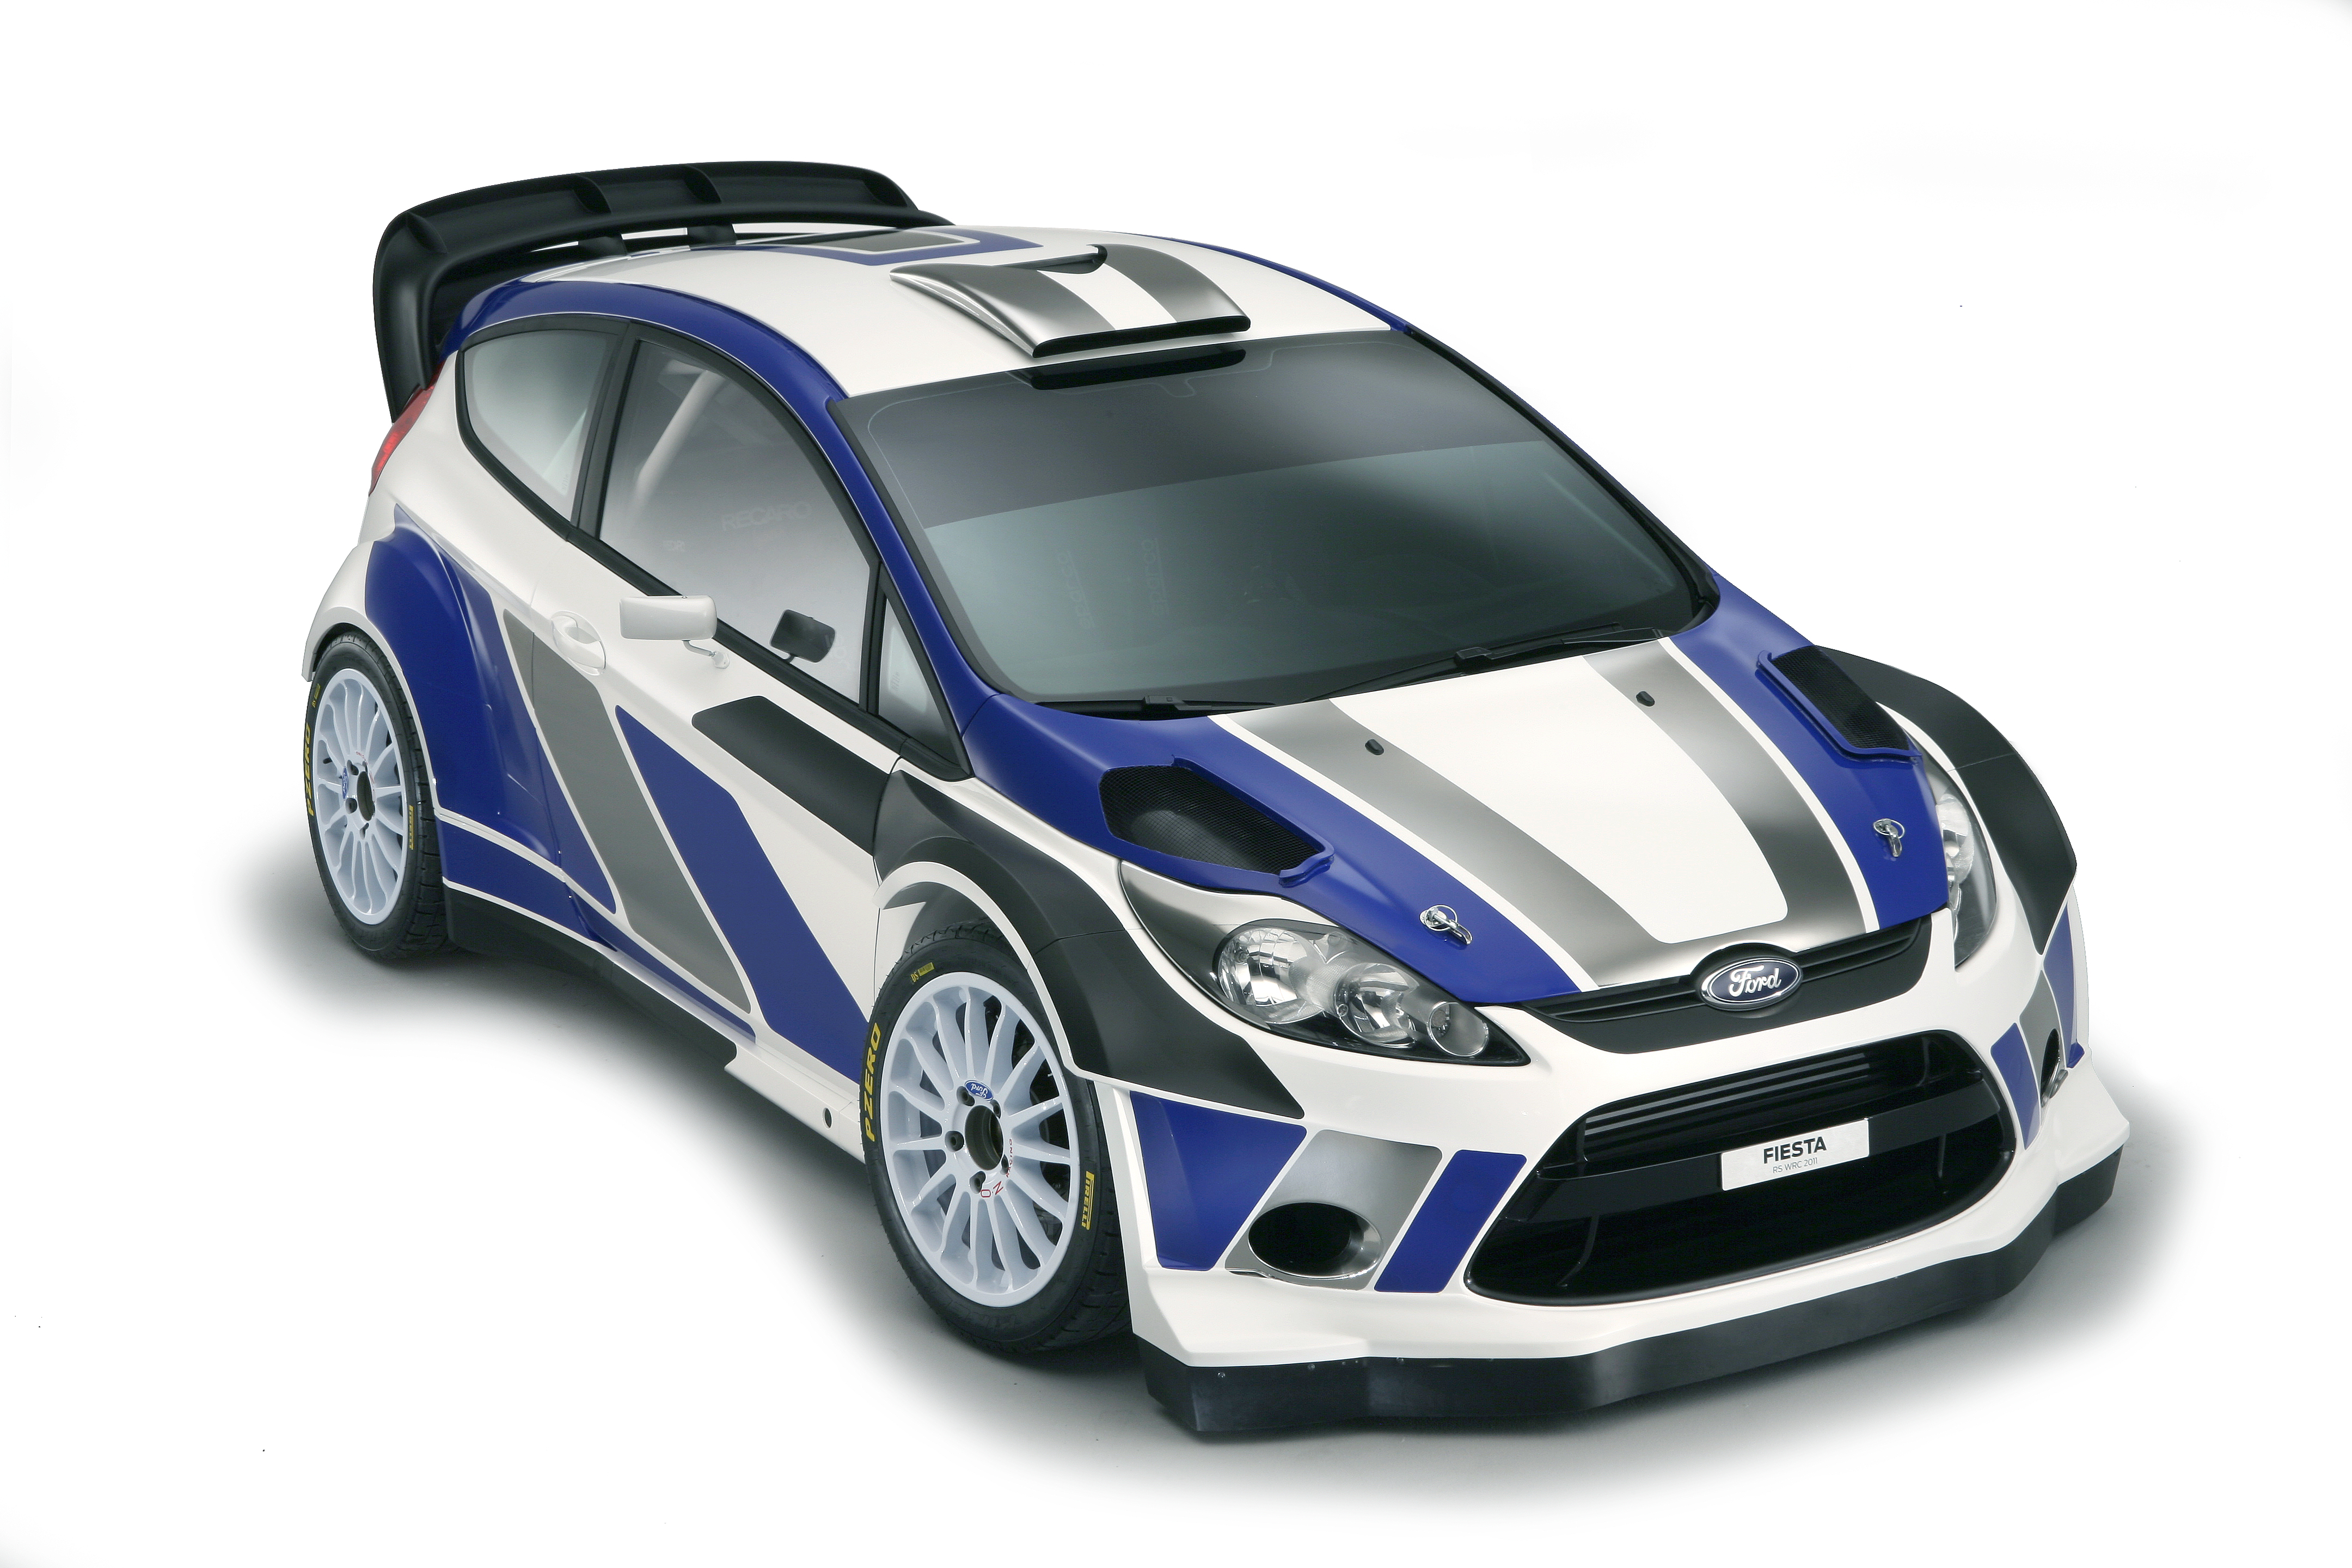 Trifecta Of New World Rally Cars Announced At 2010 Paris Motor Show